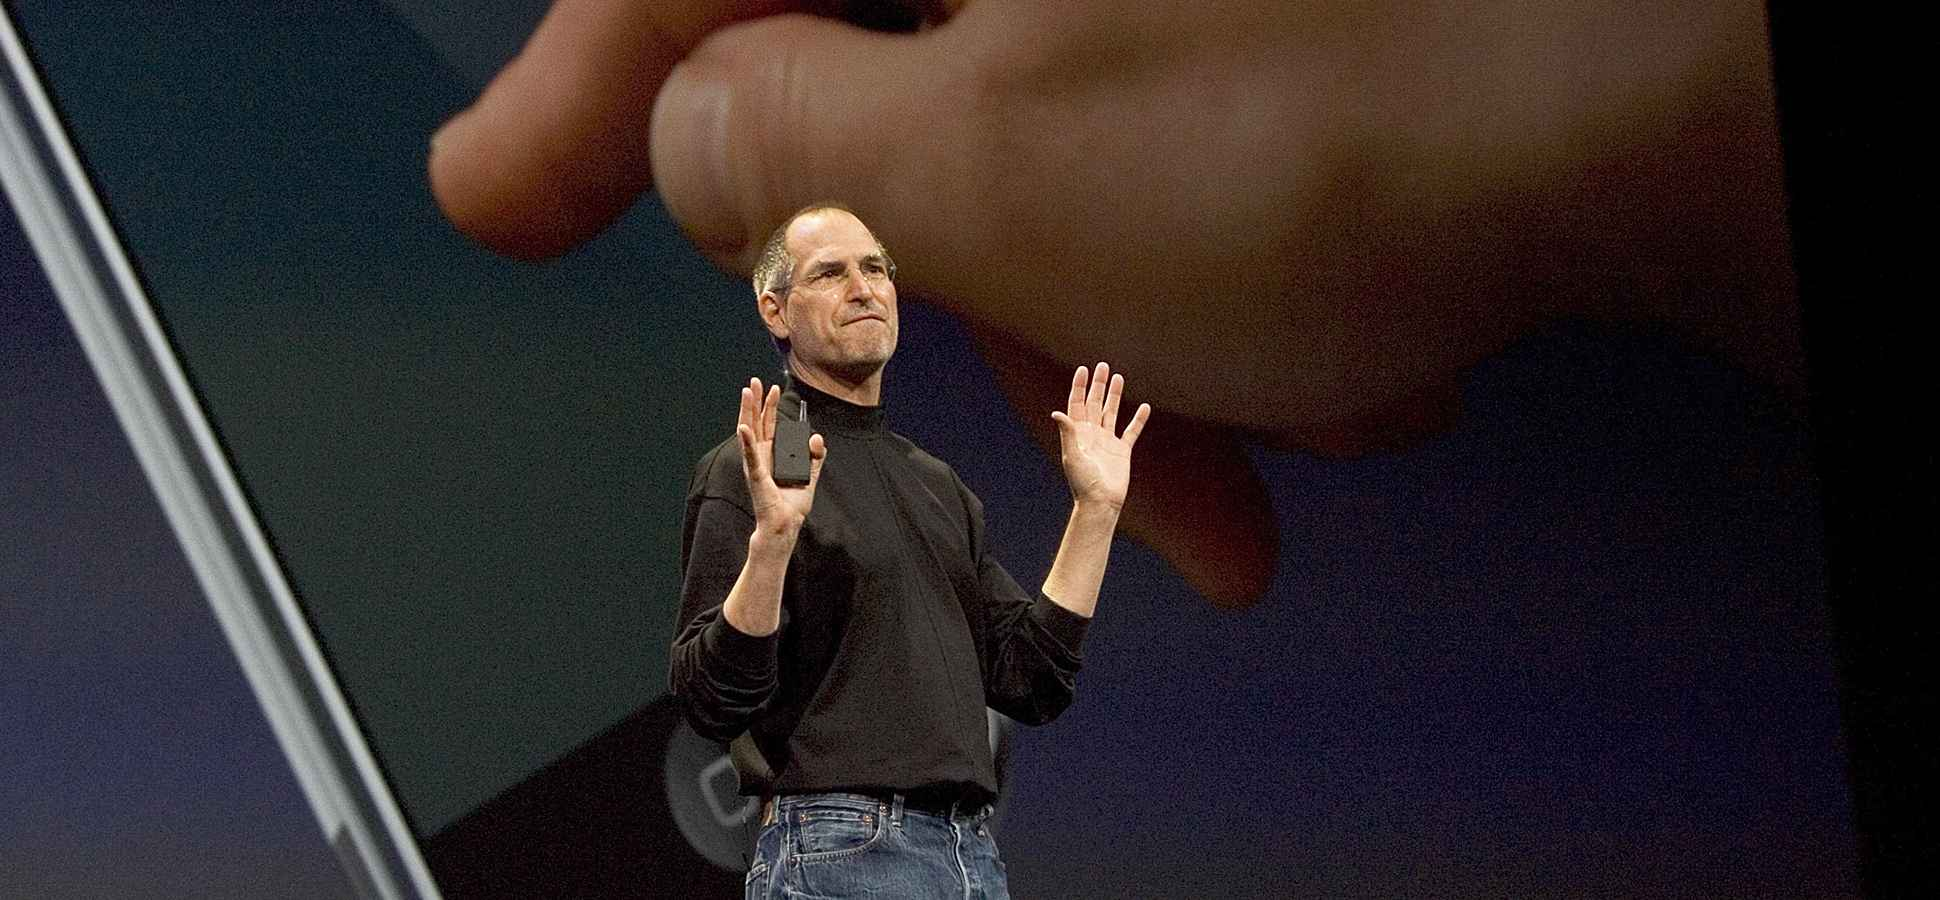 5 Reasons Why Steve Jobs's iPhone Keynote Is Still the Best Presentation of All Time